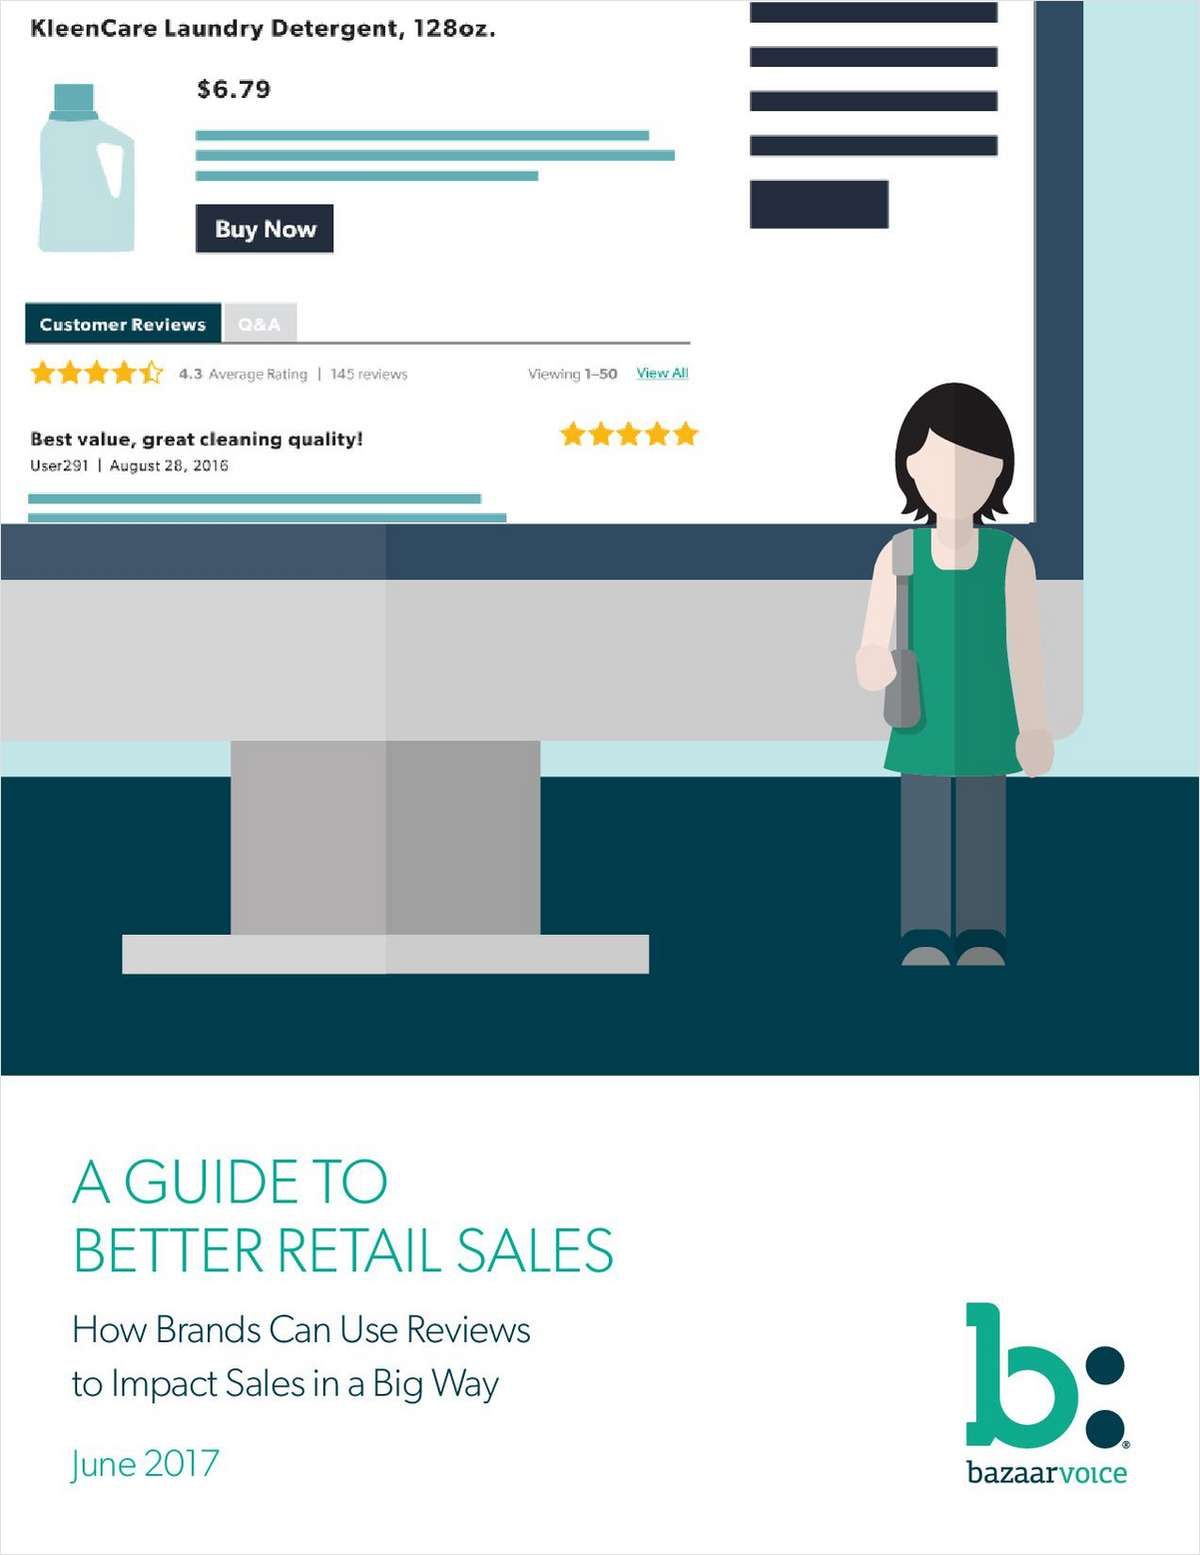 A Guide to Better Retail Sales: How Small Businesses Can Use Reviews to Impact Sales